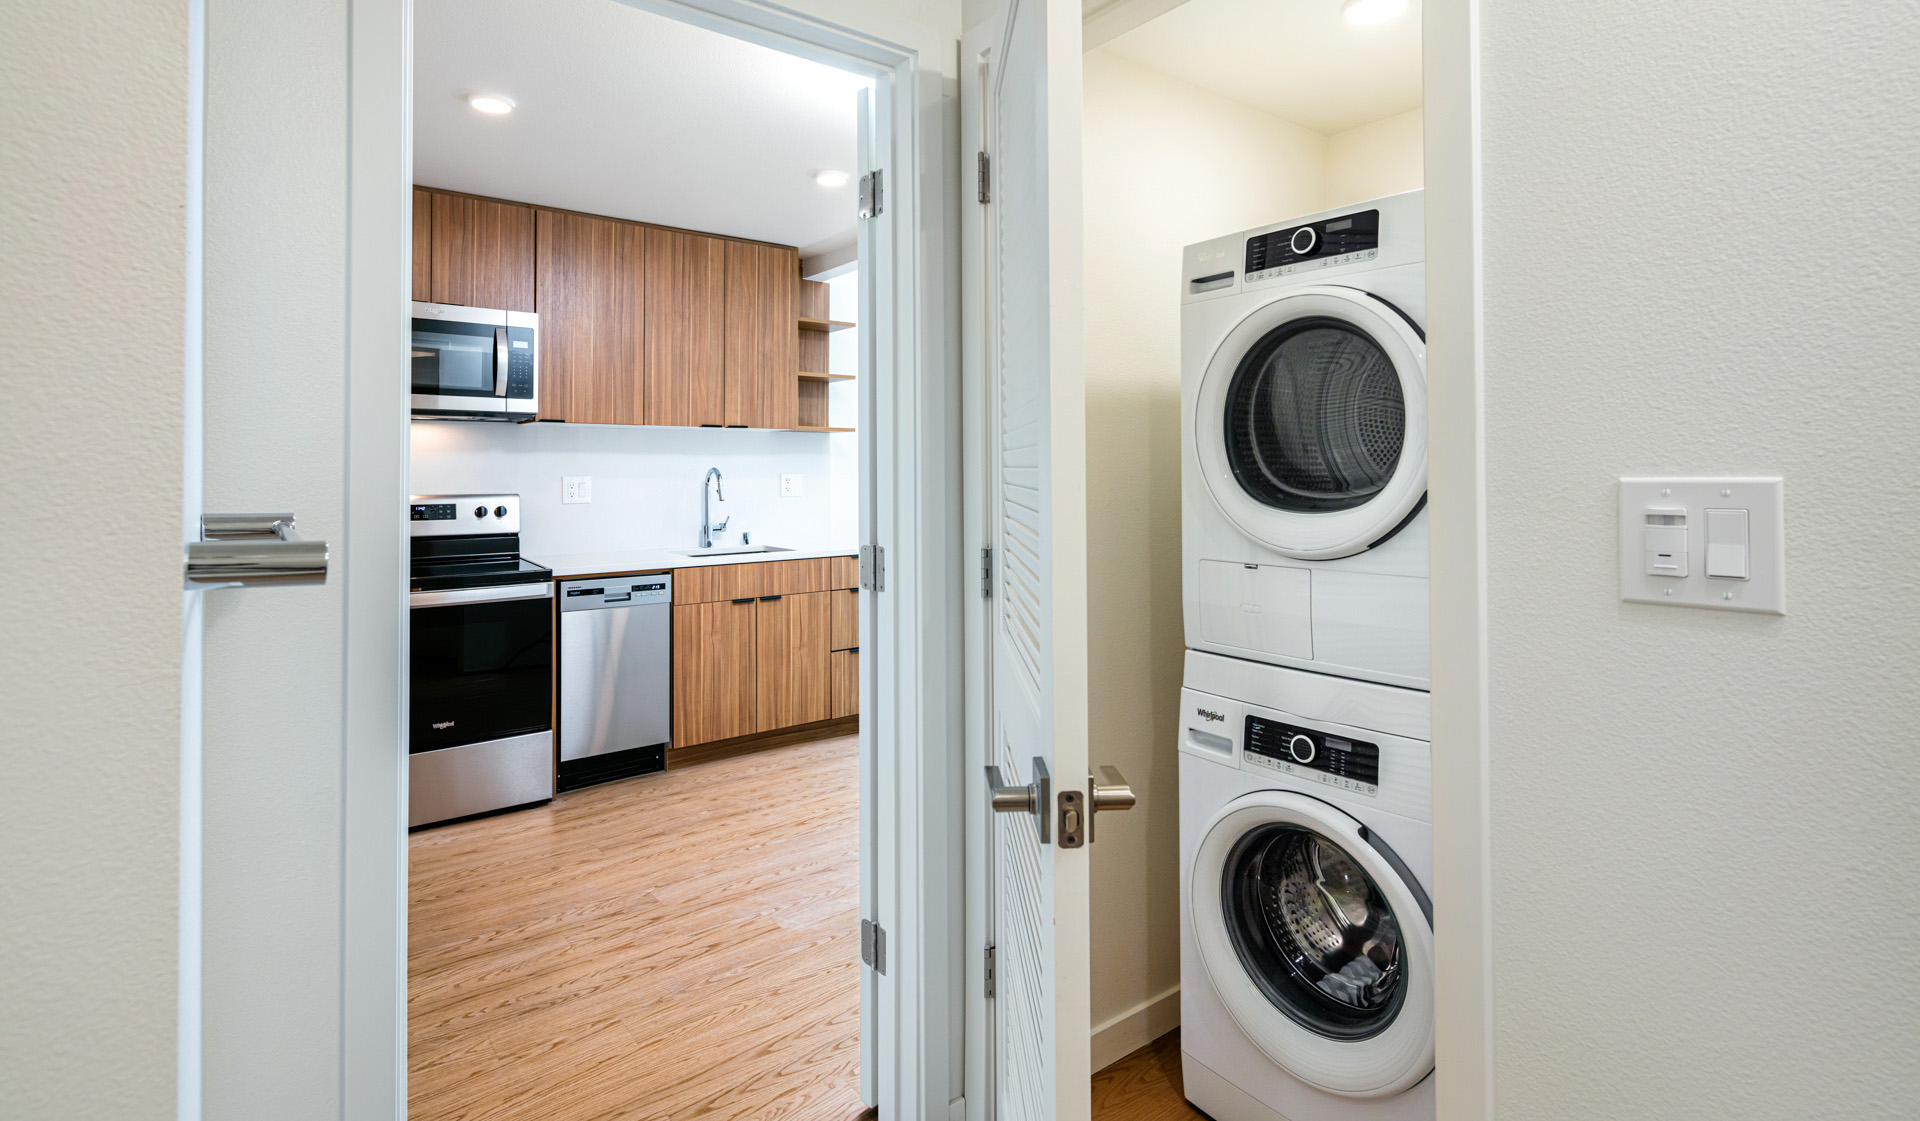 707 Leahy - Redwood City Apartments - Studio Laundry